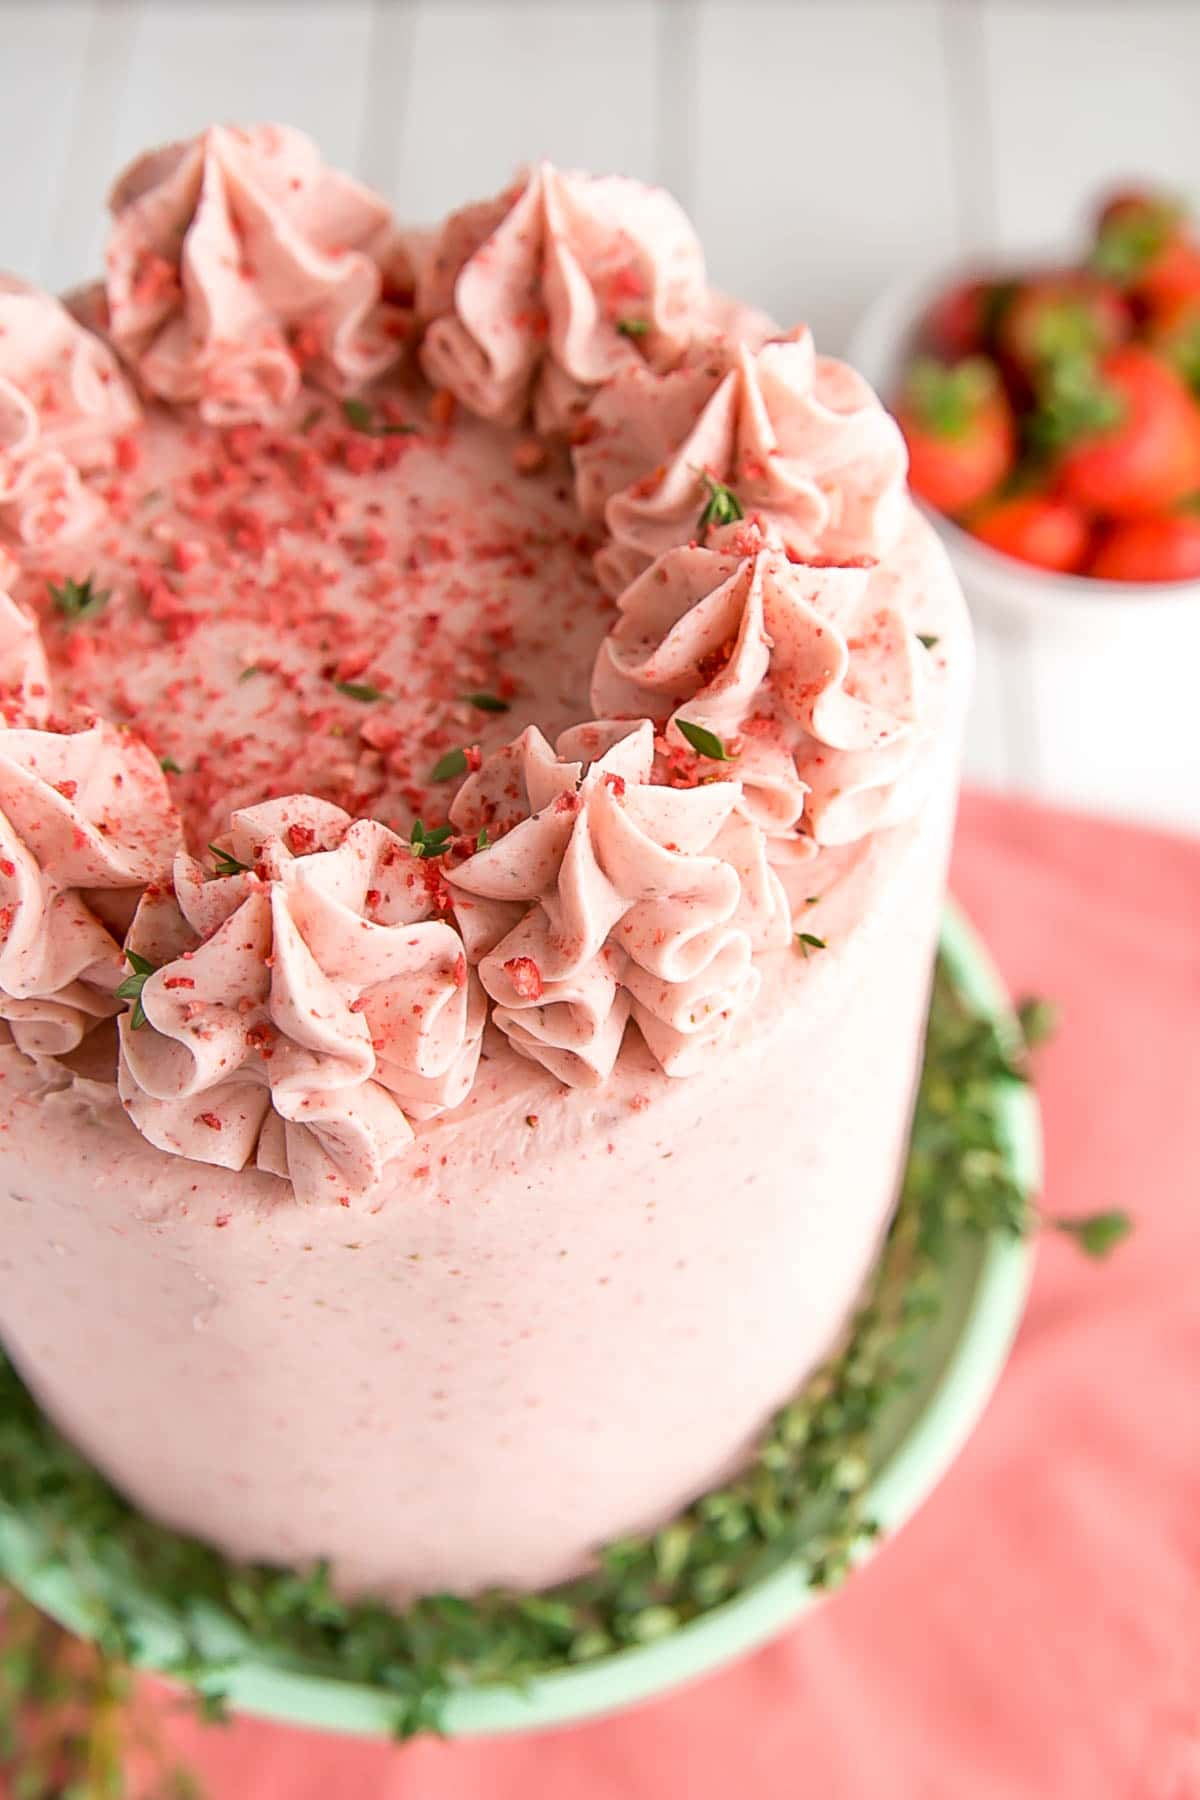 Strawberry cake with ruffle dollops on top.